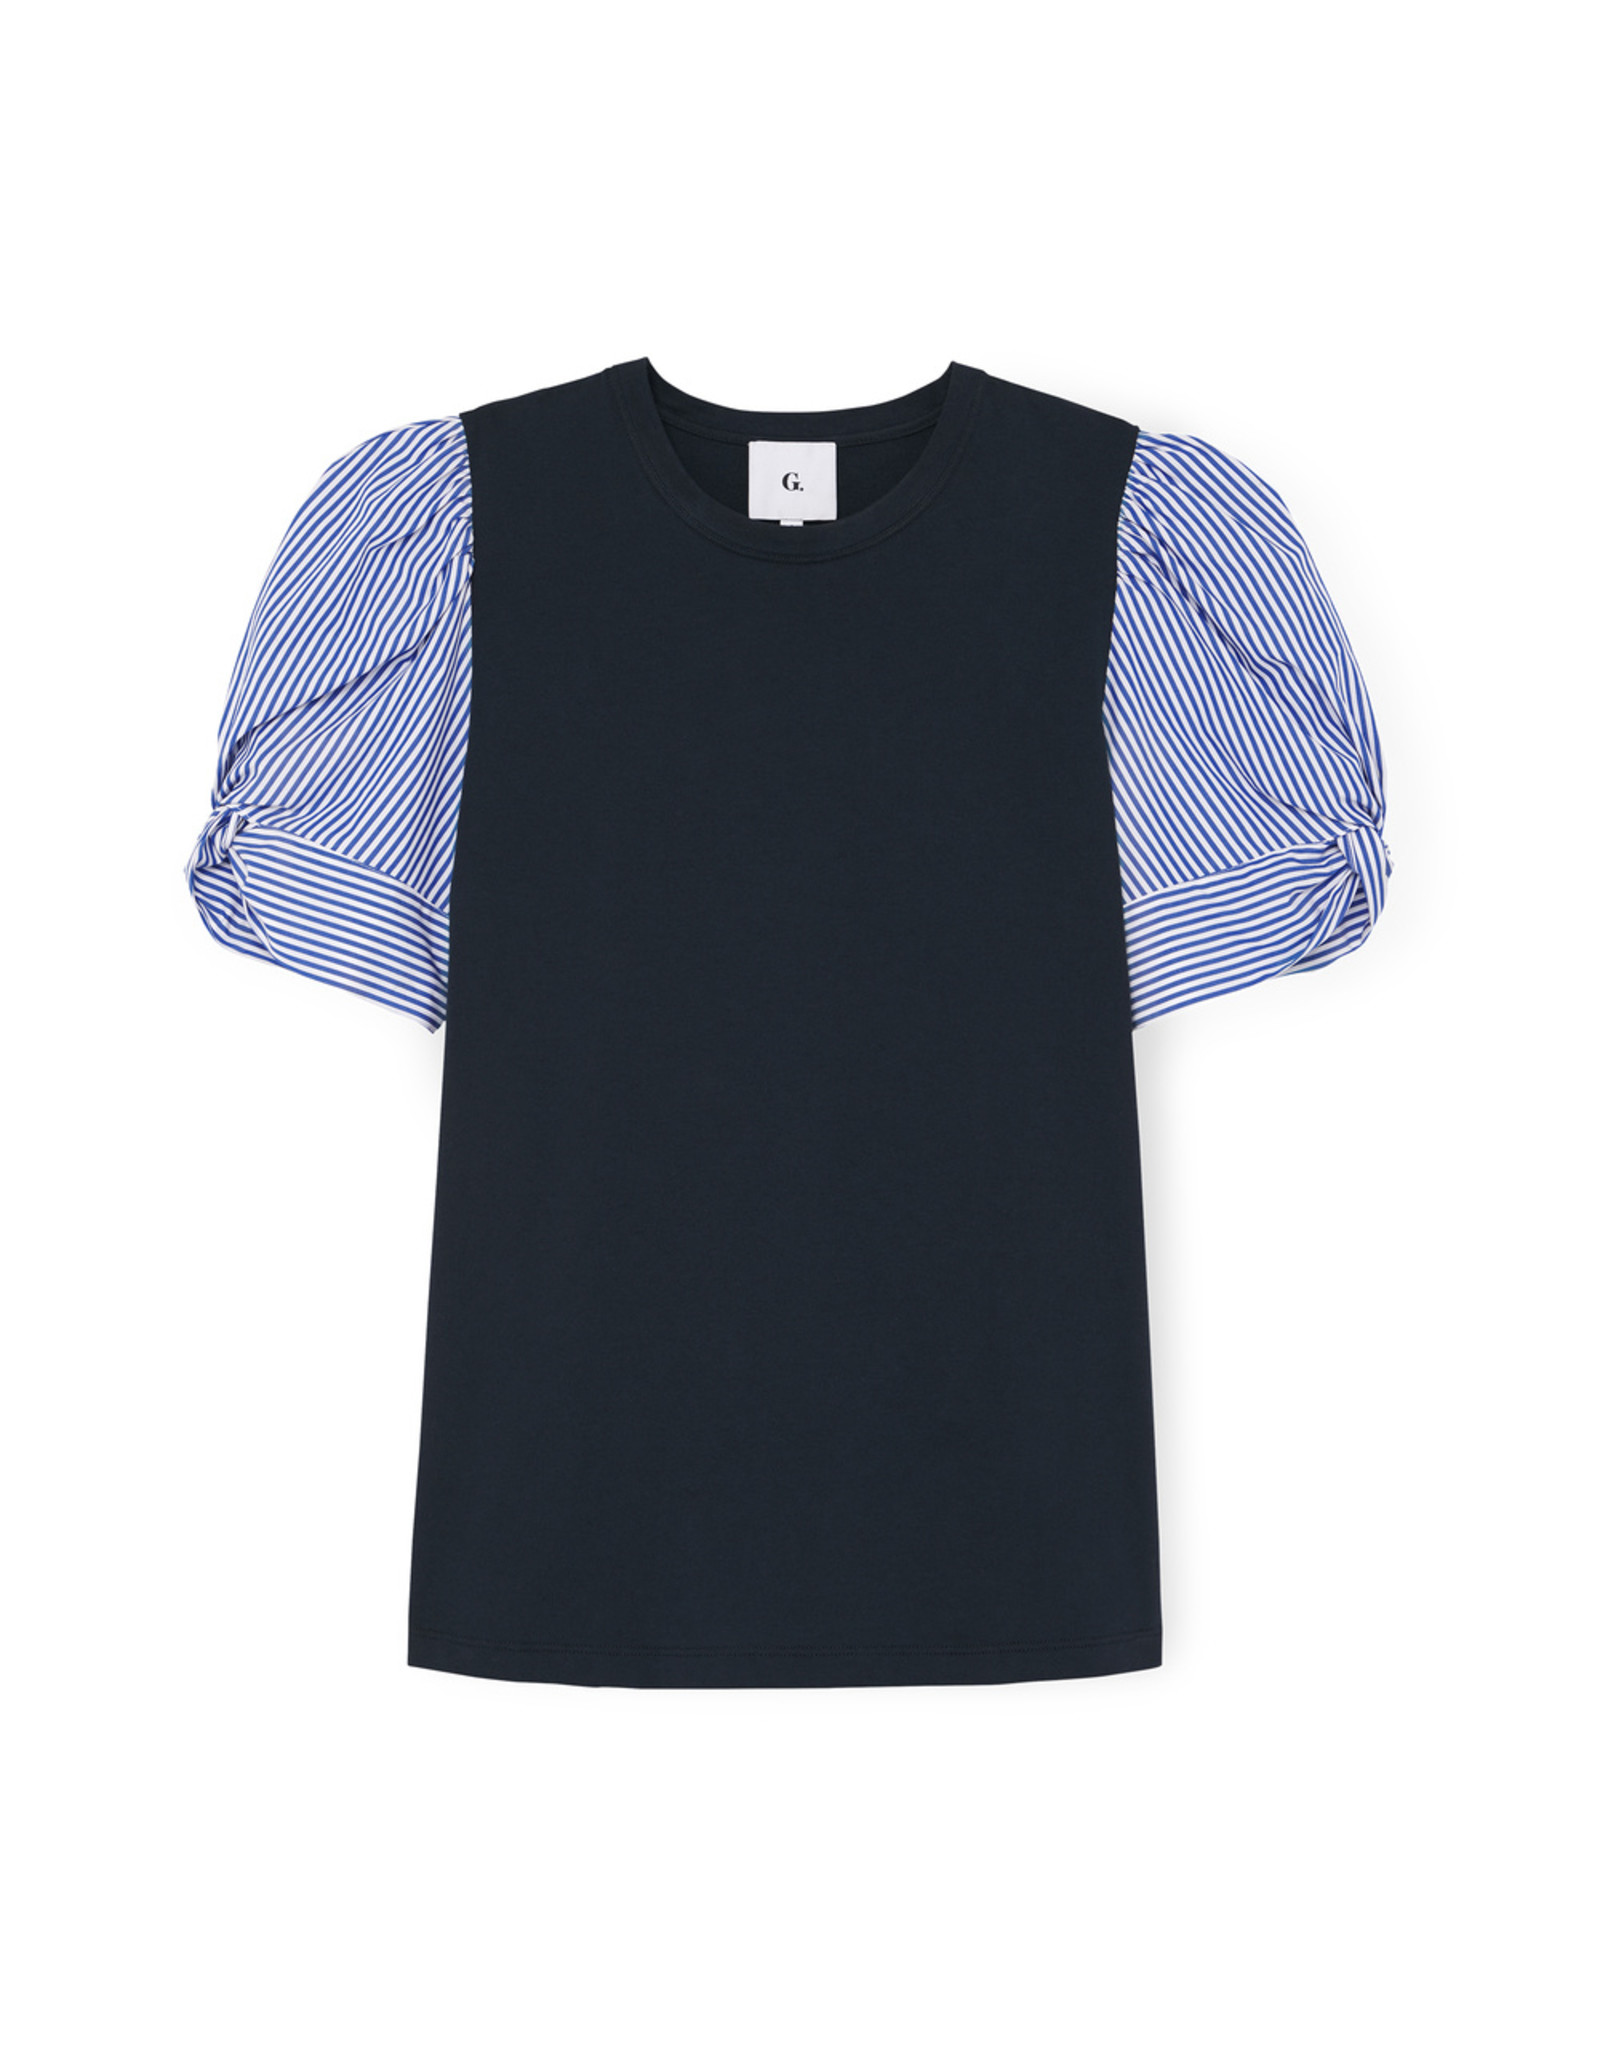 G. Label G. Label Justine Puff Sleeve T-Shirt (Size: 0, Color: Navy/Stripe)